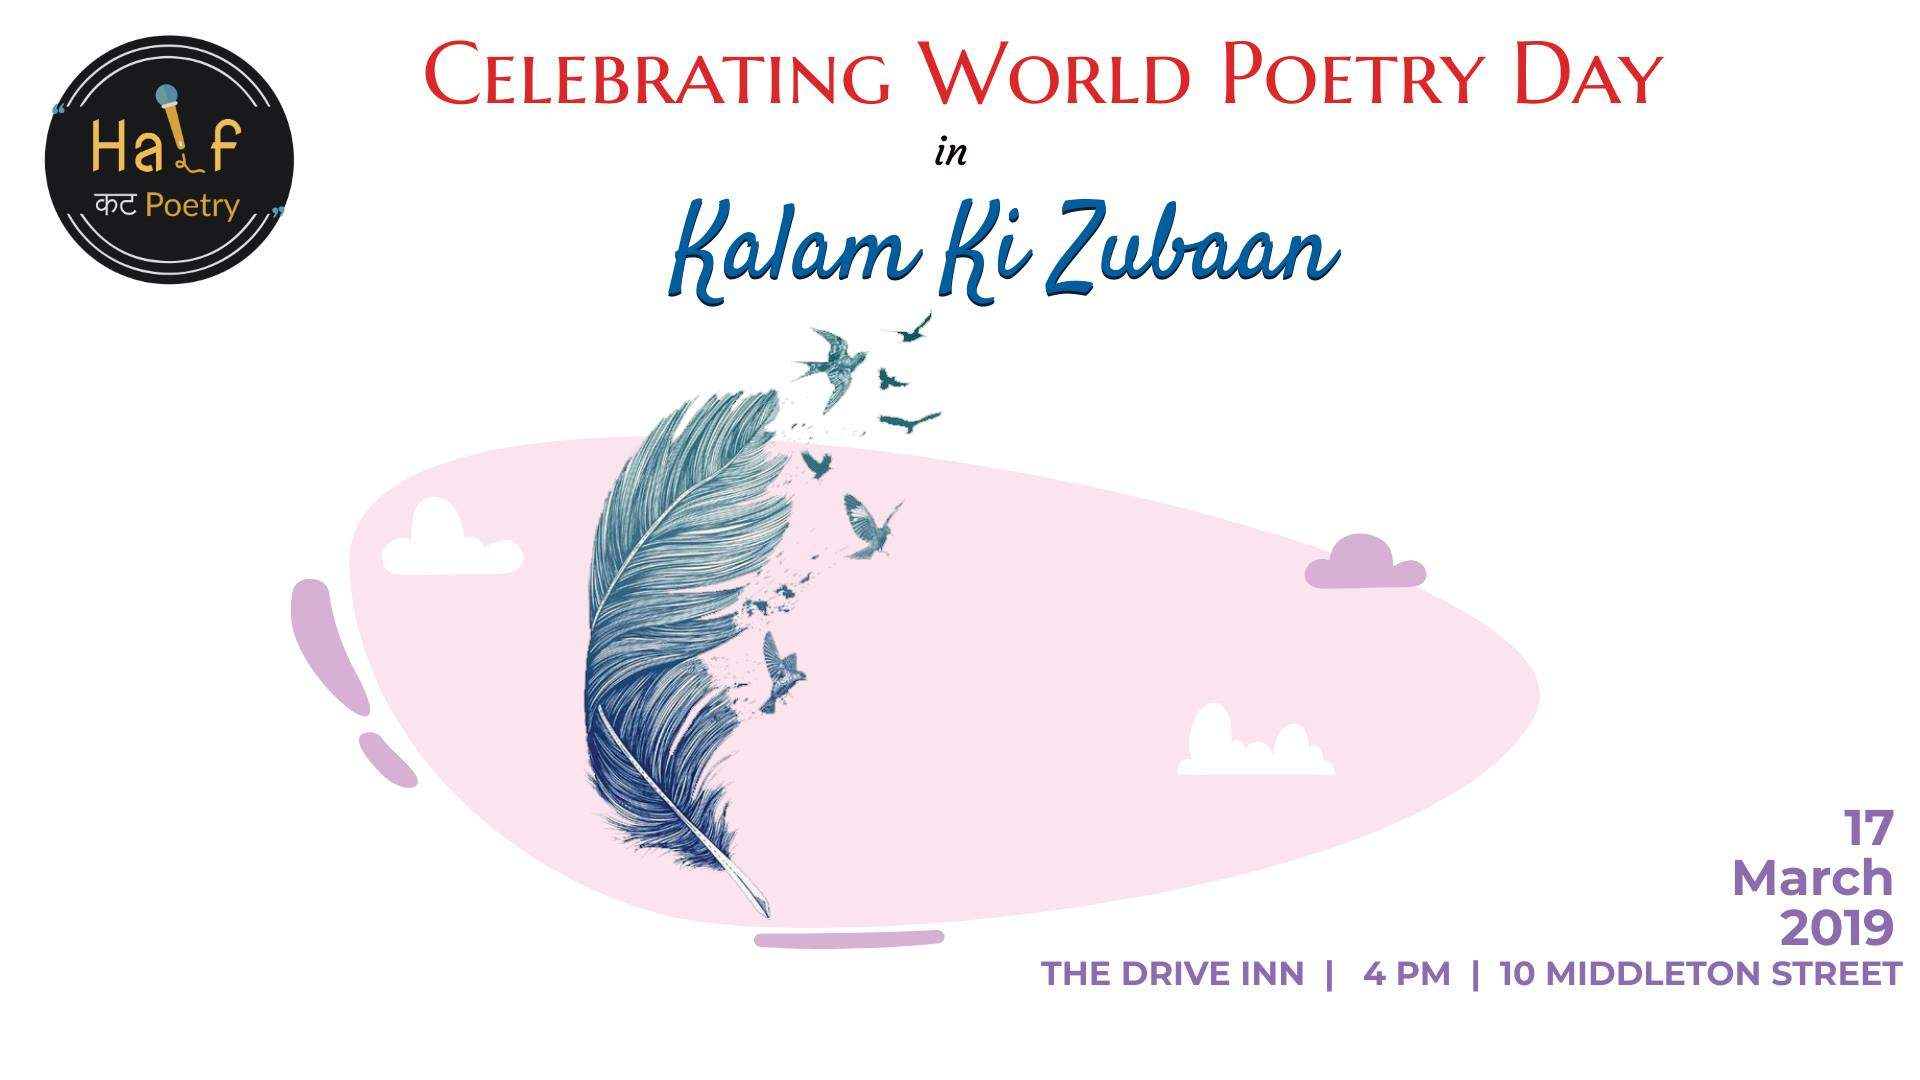 Celebrate World Poetry Day with Half Cut Poetry at The Drive Inn 1920x1080